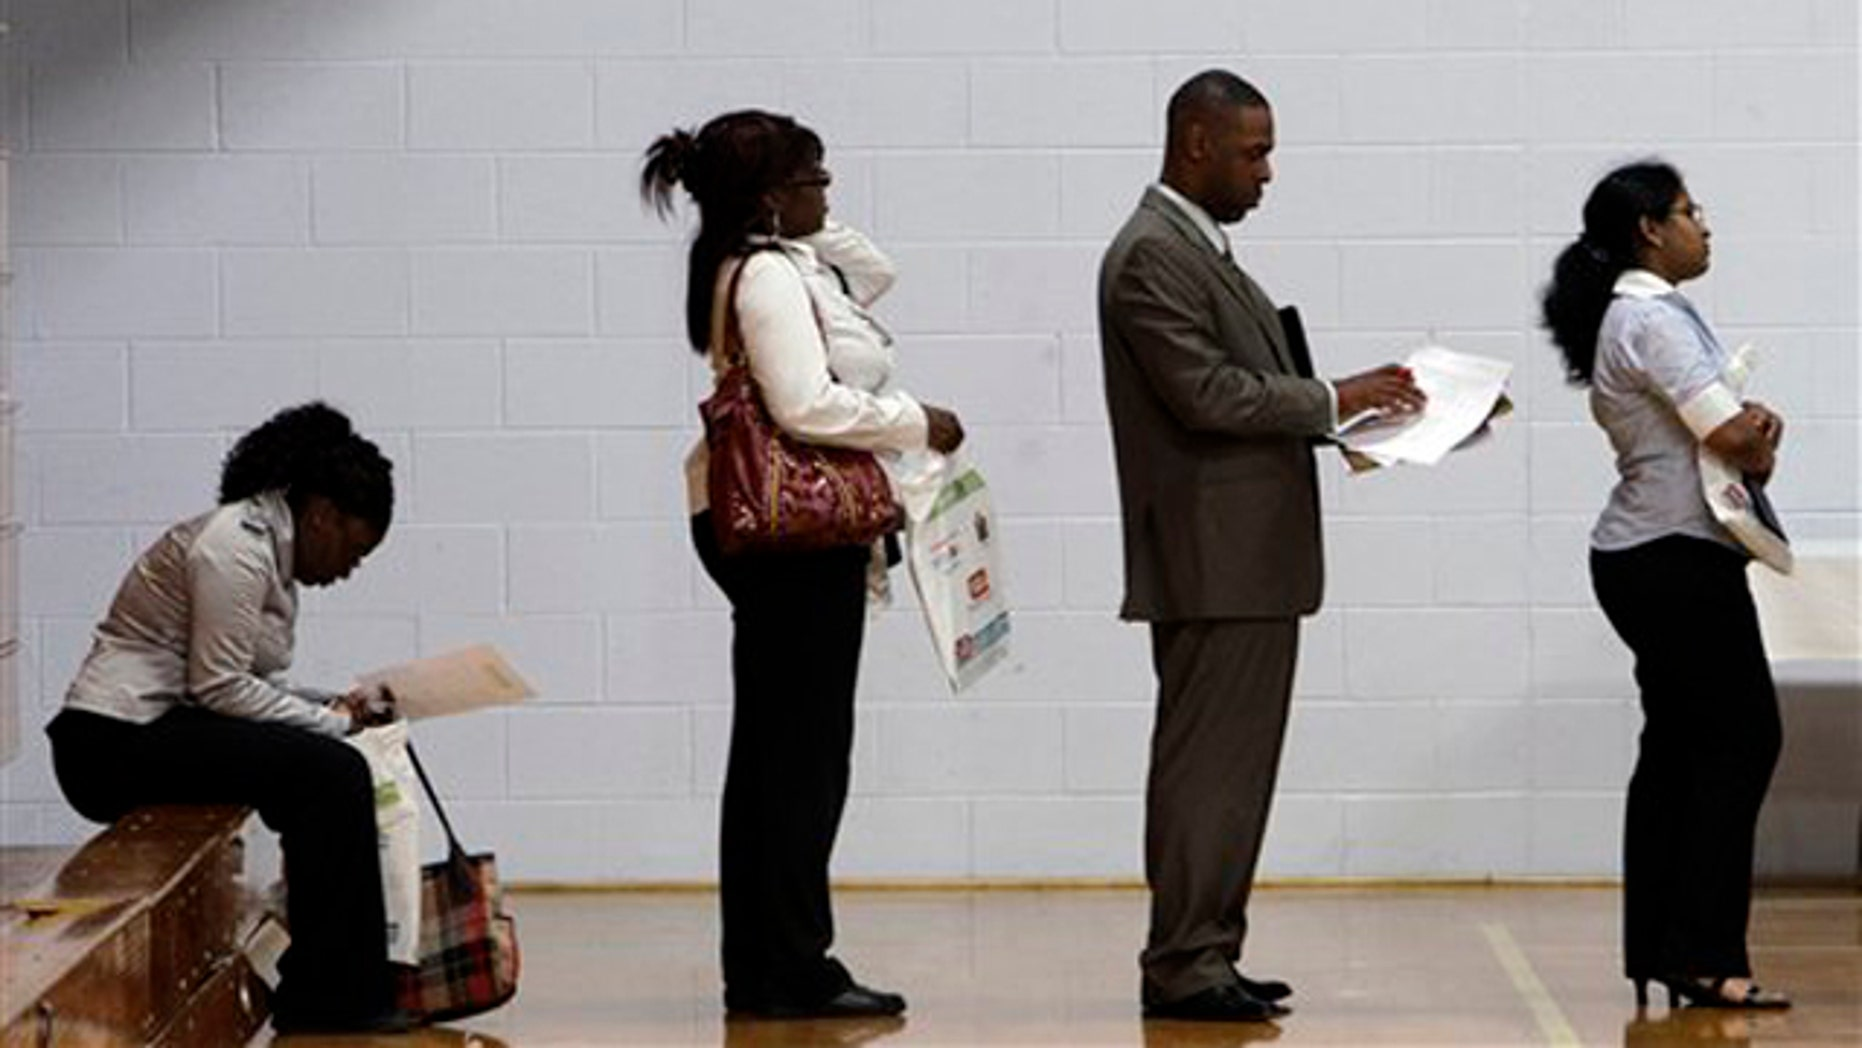 In this June 15 photo, job seekers wait in a line at a job fair in Southfield, Mich.